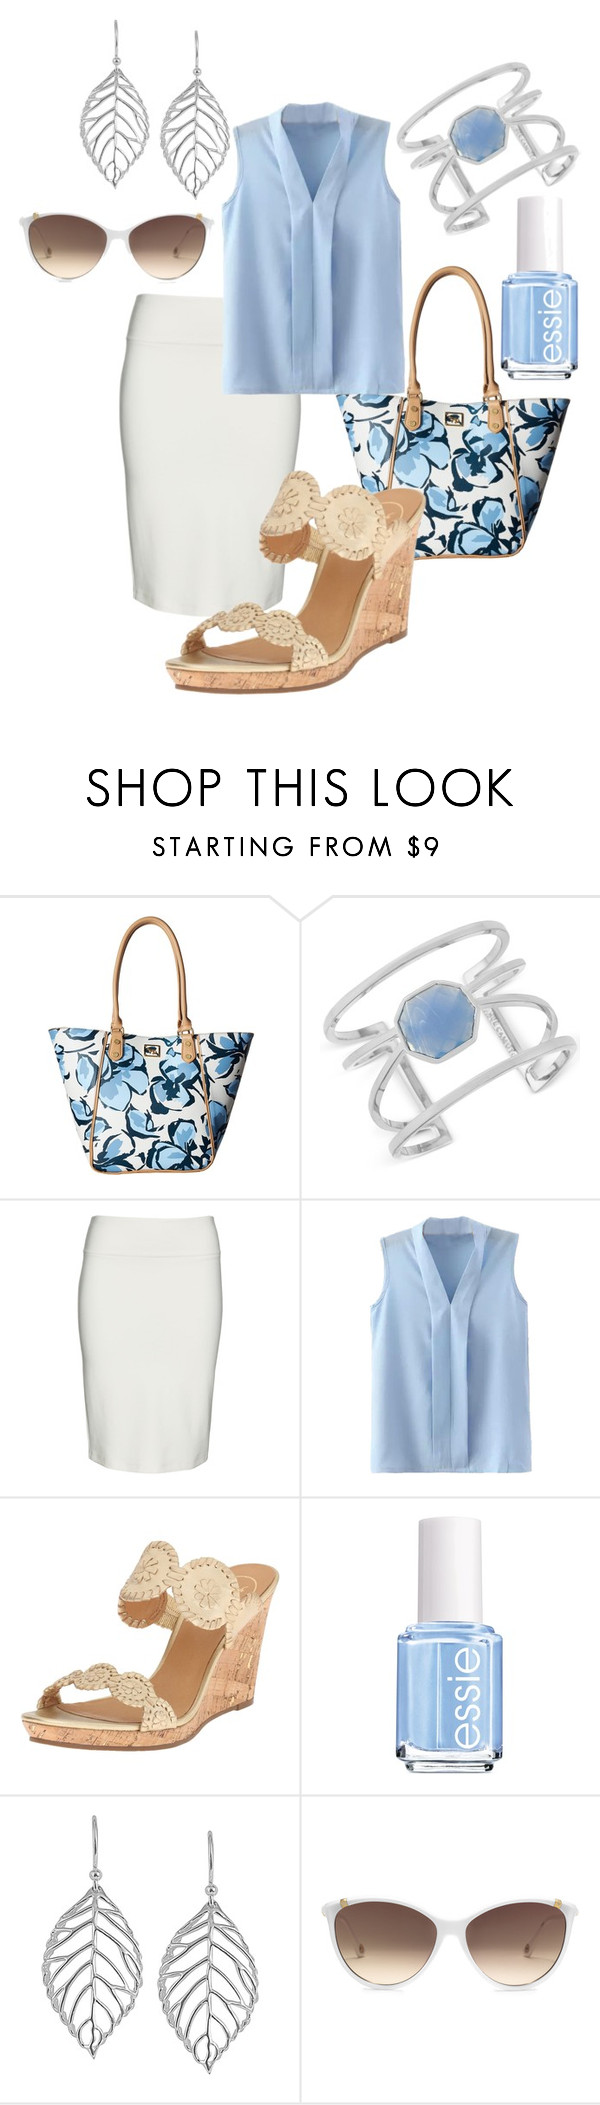 """Blue floral tote #981"" by highheelsandhotflashes ❤ liked on Polyvore featuring Emma Fox, Vince Camuto, Yoek, Jack Rogers, Essie, Jewel Exclusive and Michael Kors"